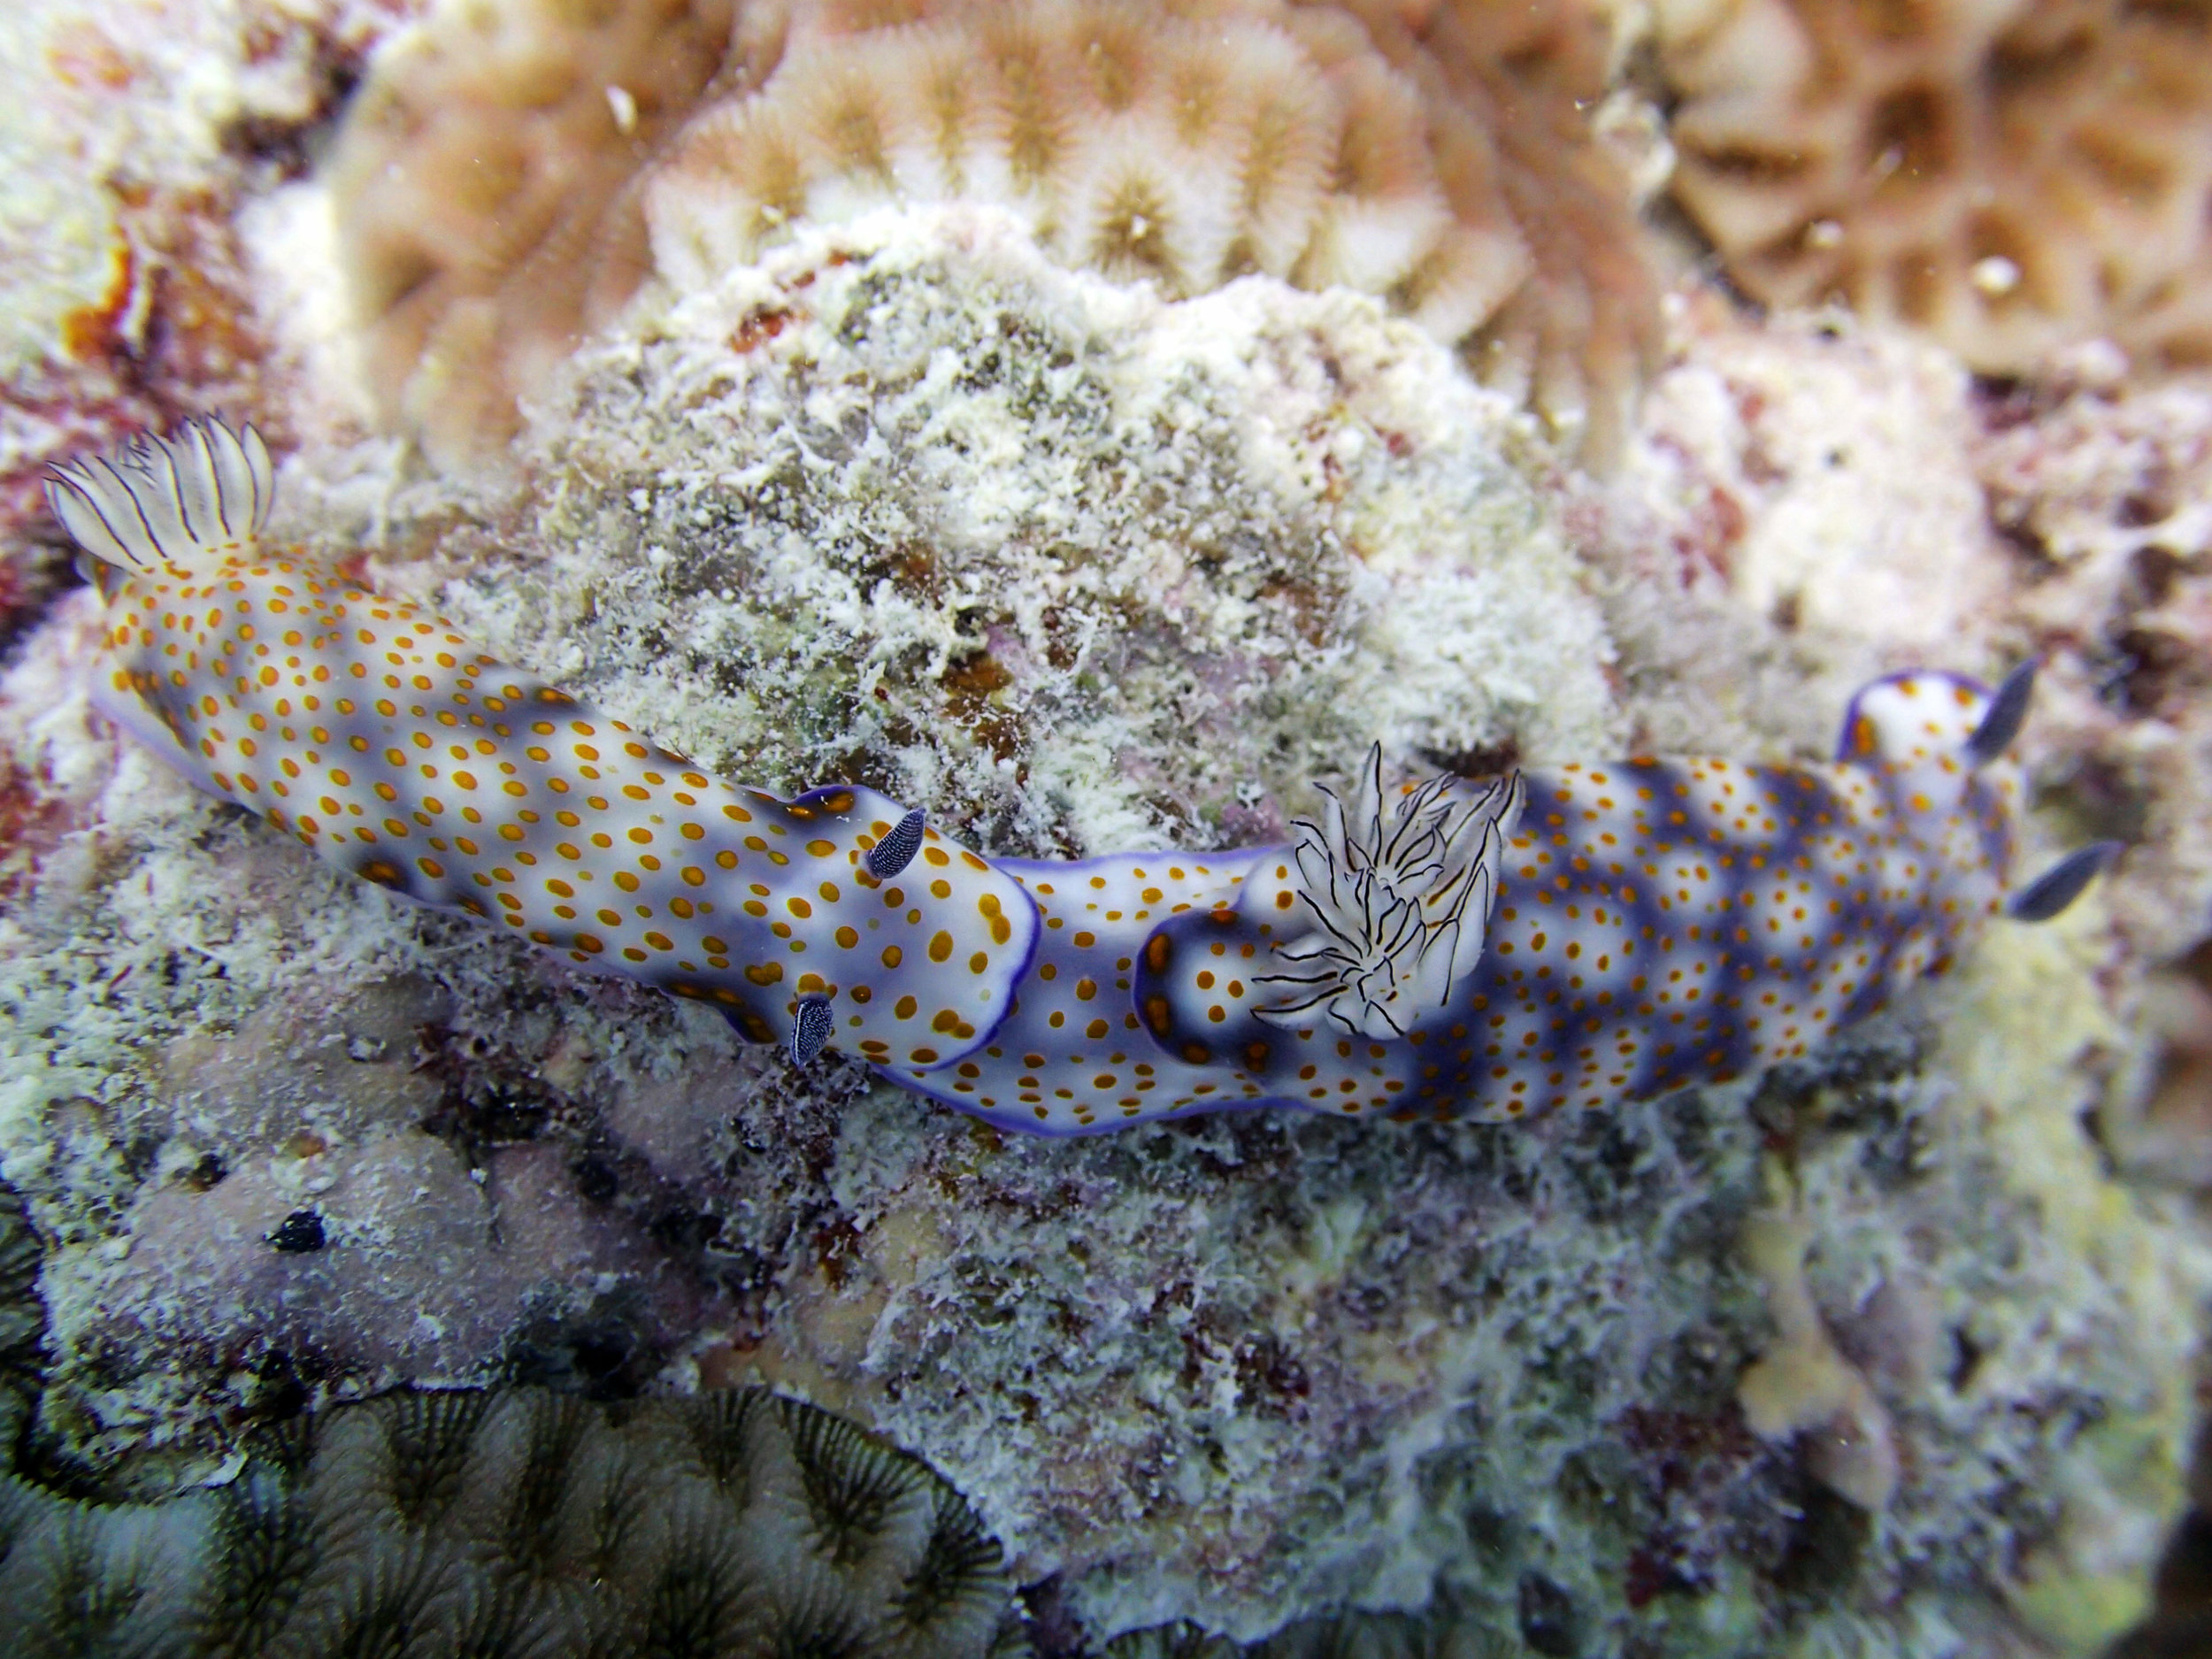 best nudibranch mating shot.jpg